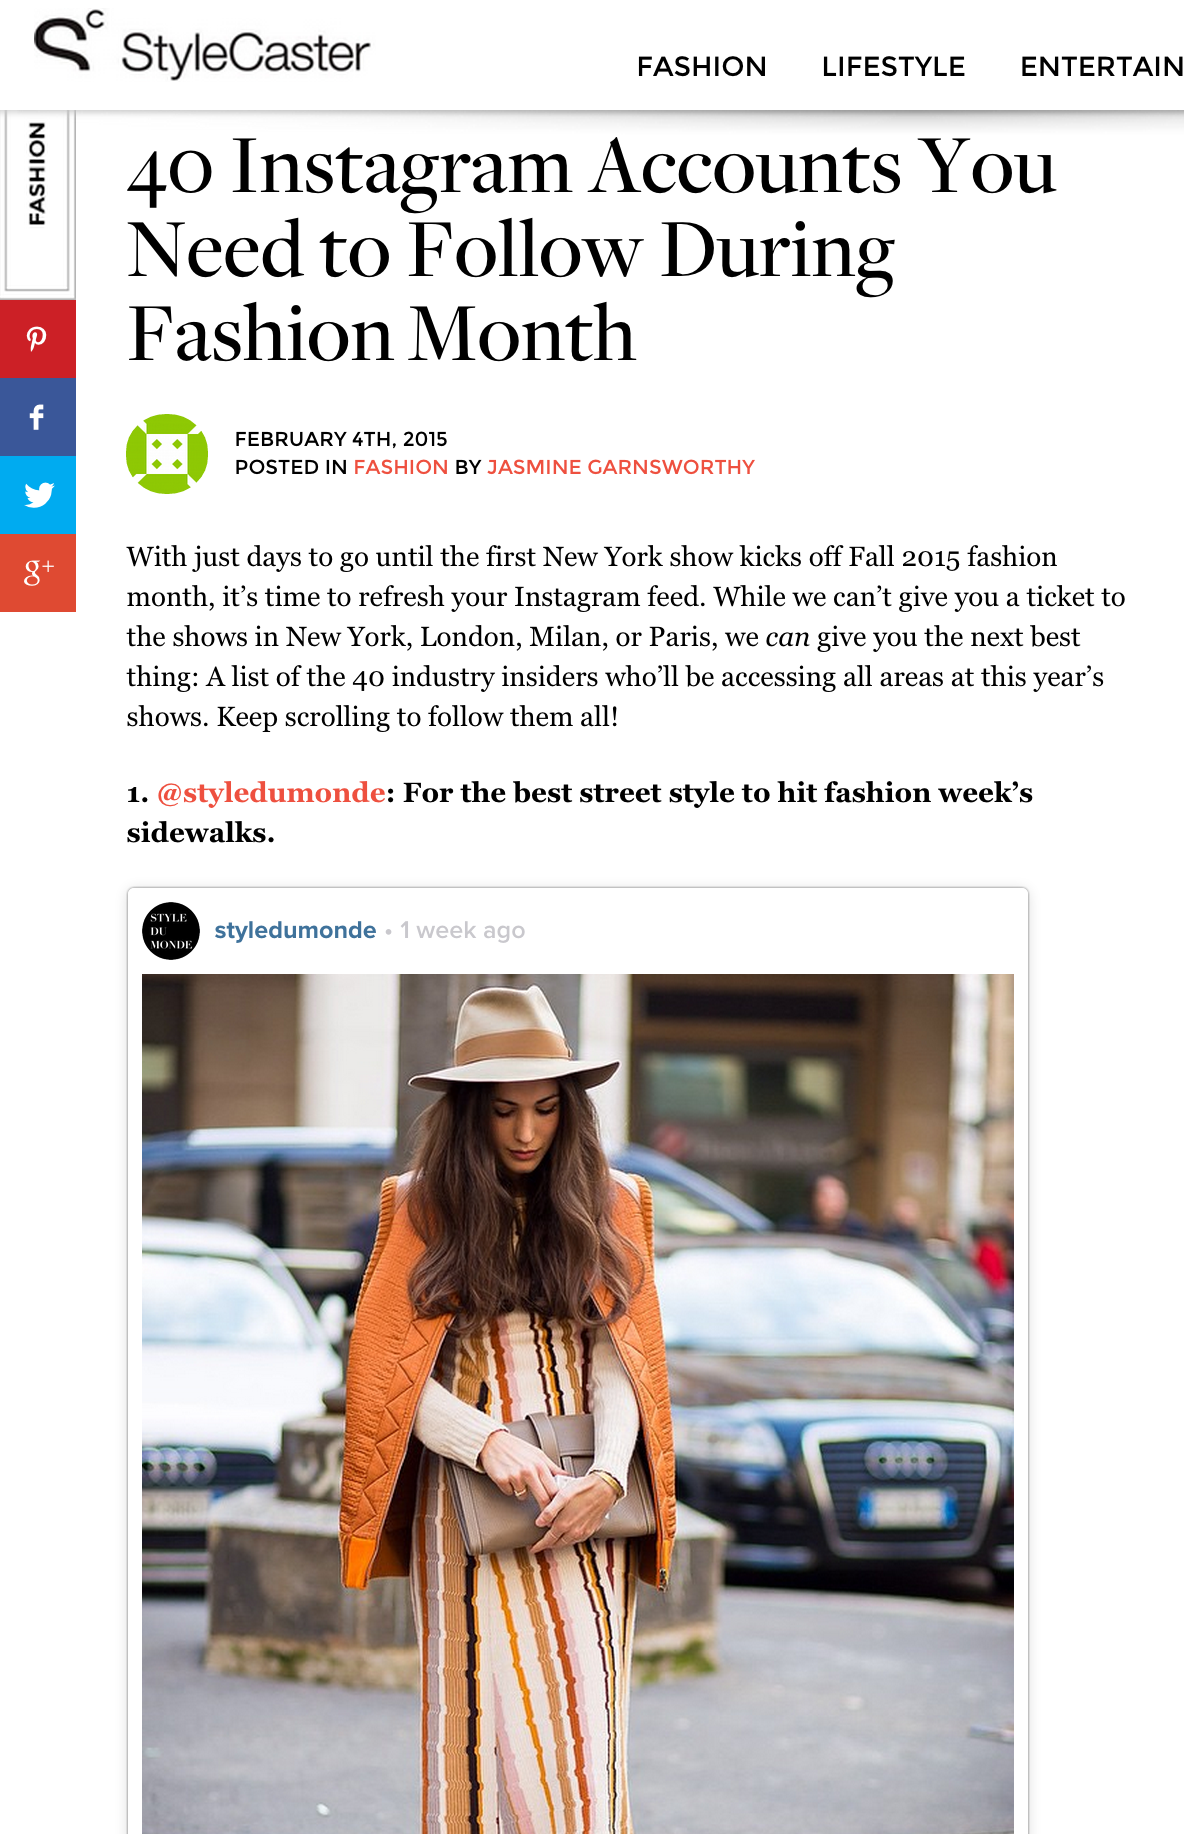 Stylecaster Style Du Monde Featured As One Of 40 Instagram Accounts You Need To Follow During